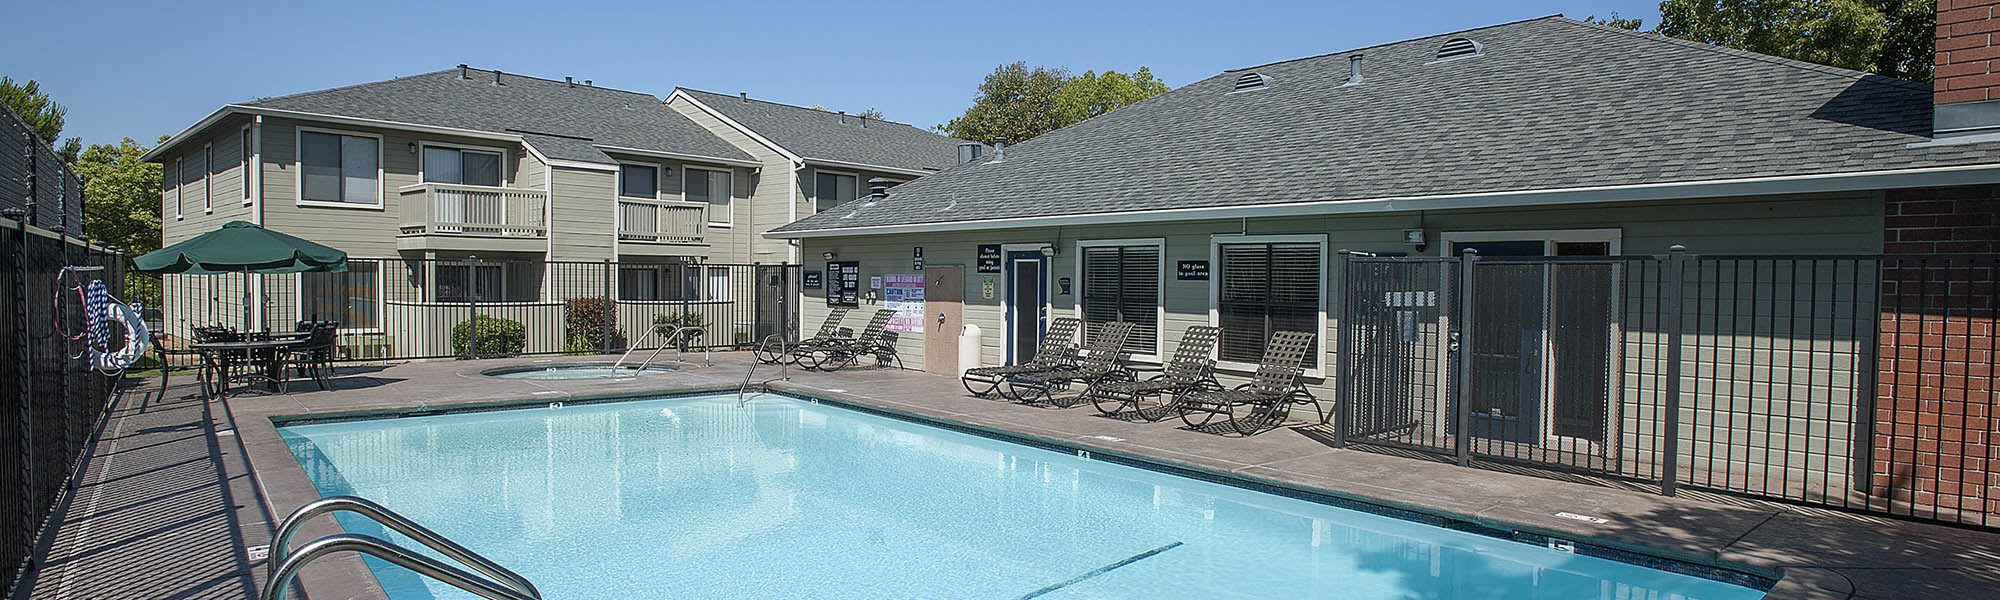 See what we have to offer by visiting Sandpiper Village Apartment Homes's amenities page.